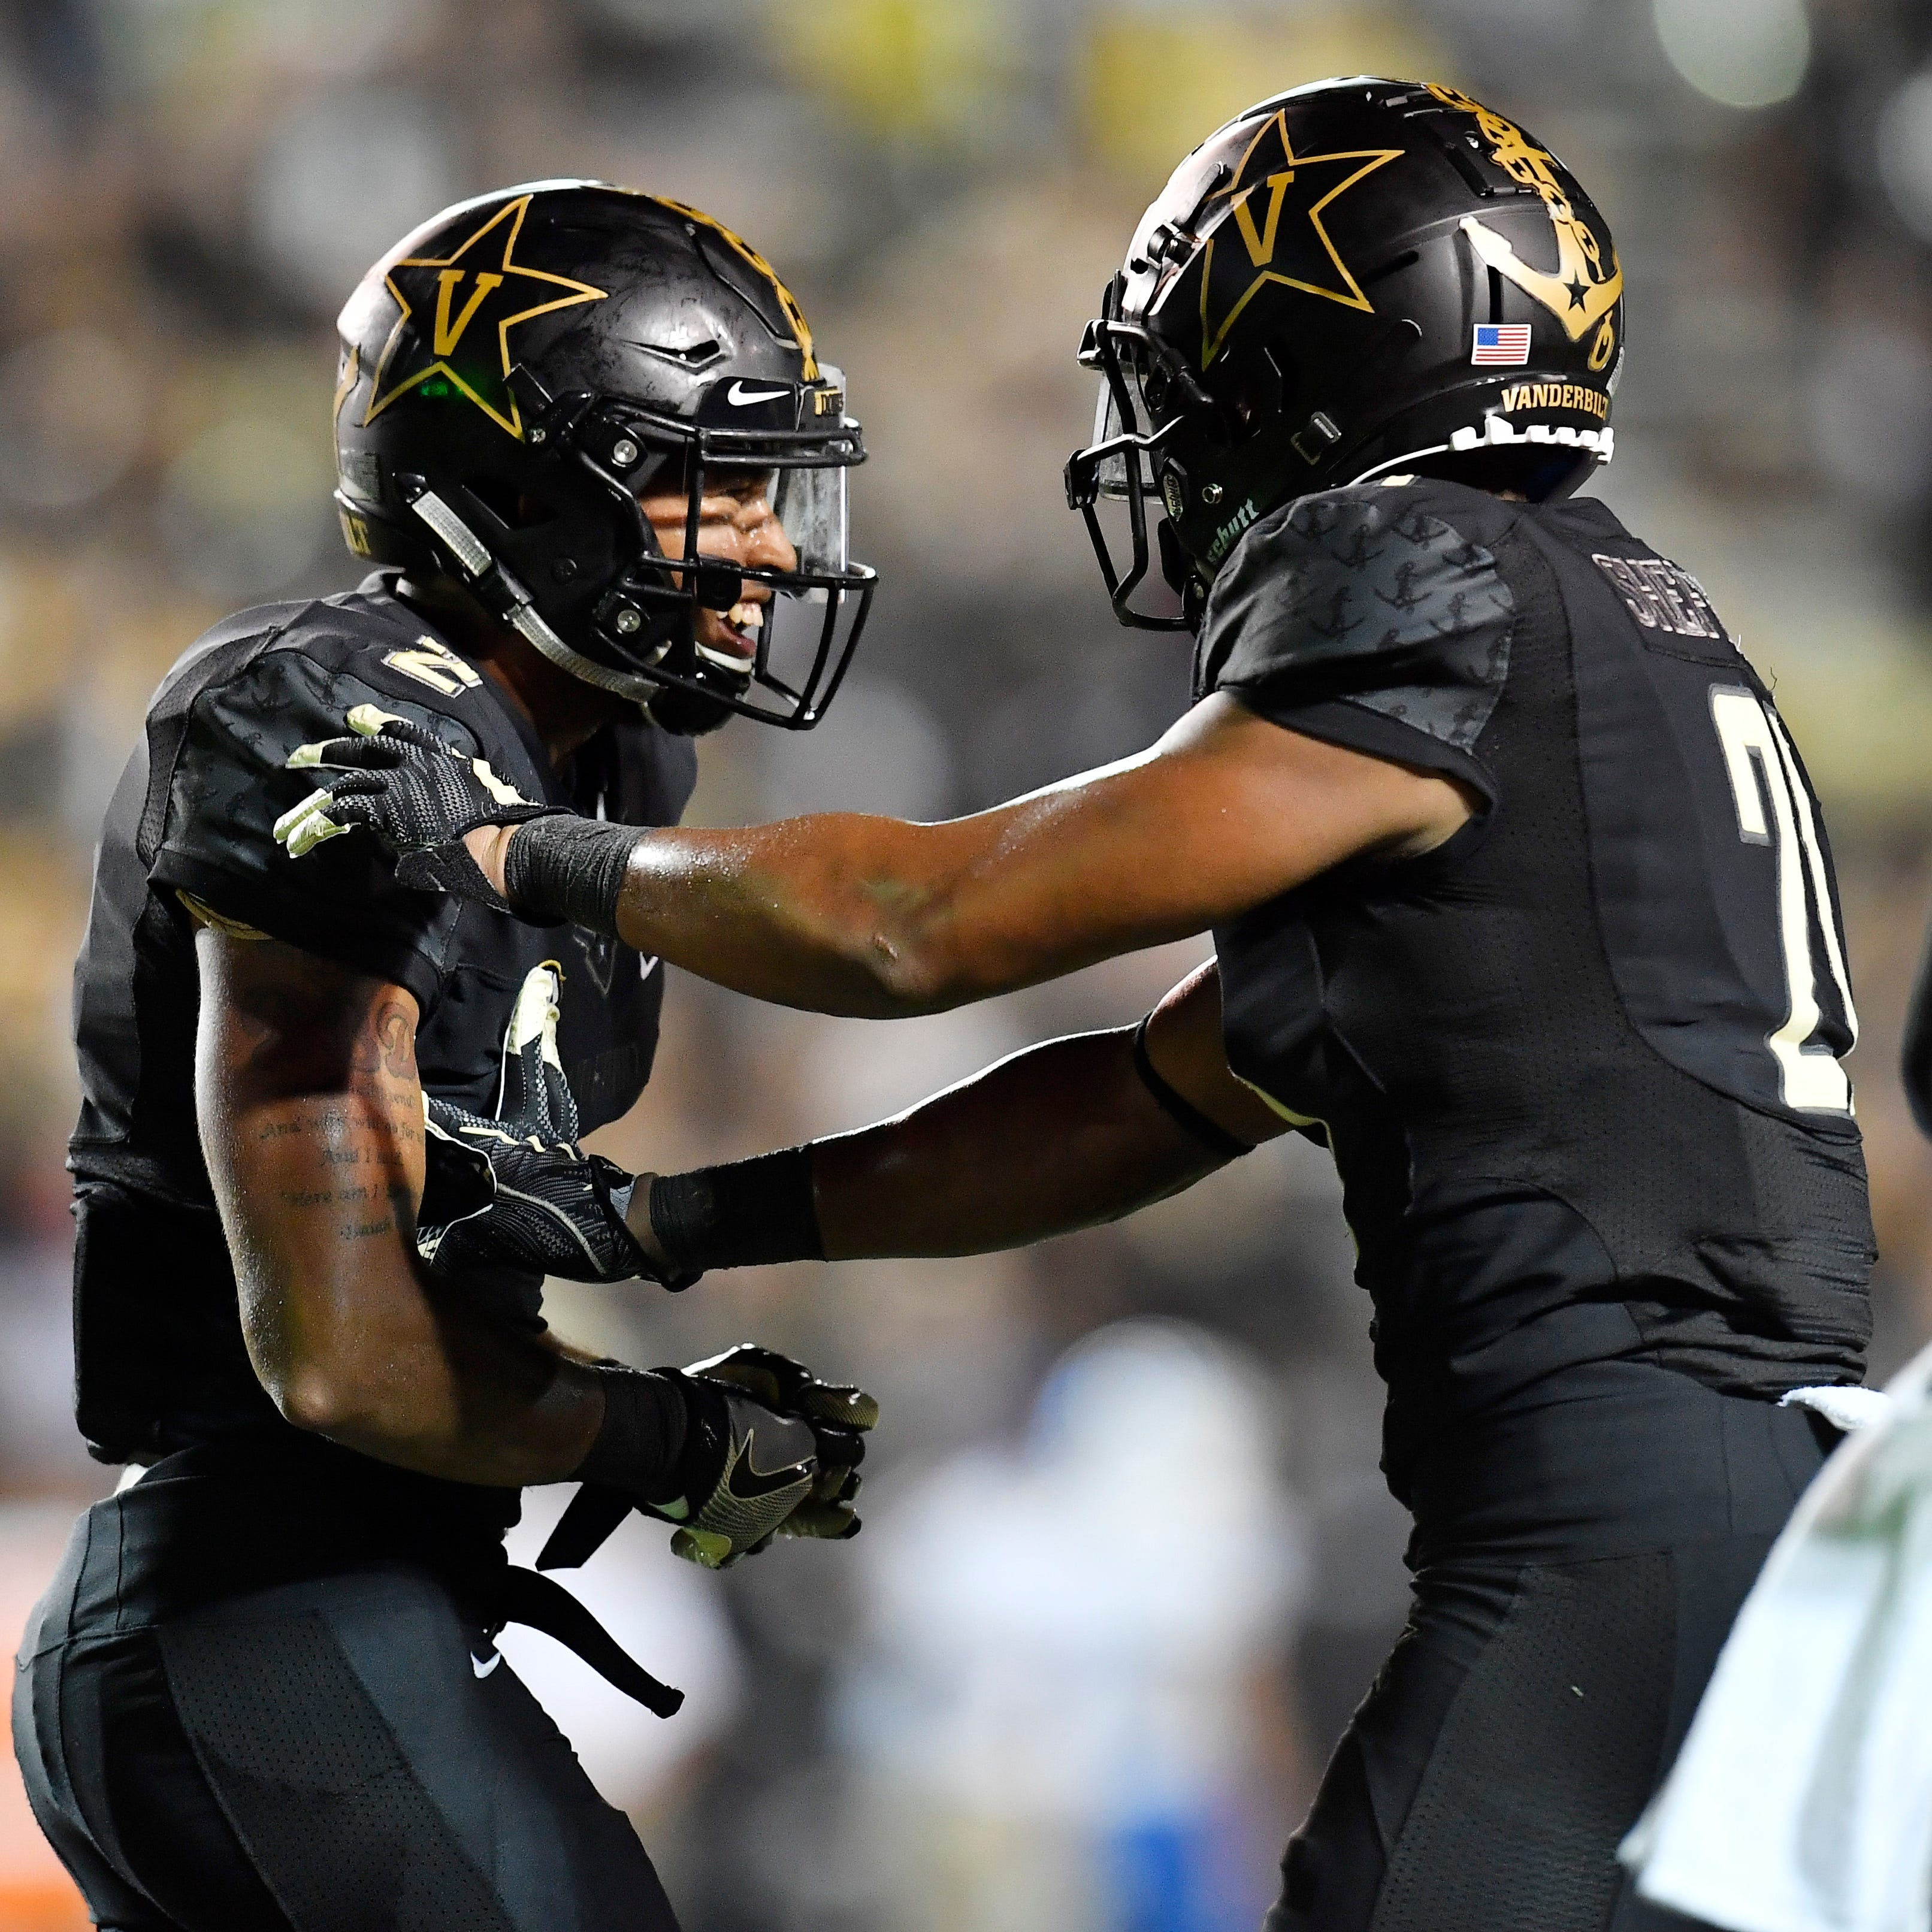 Up next: Vanderbilt to face another explosive offense in Nevada